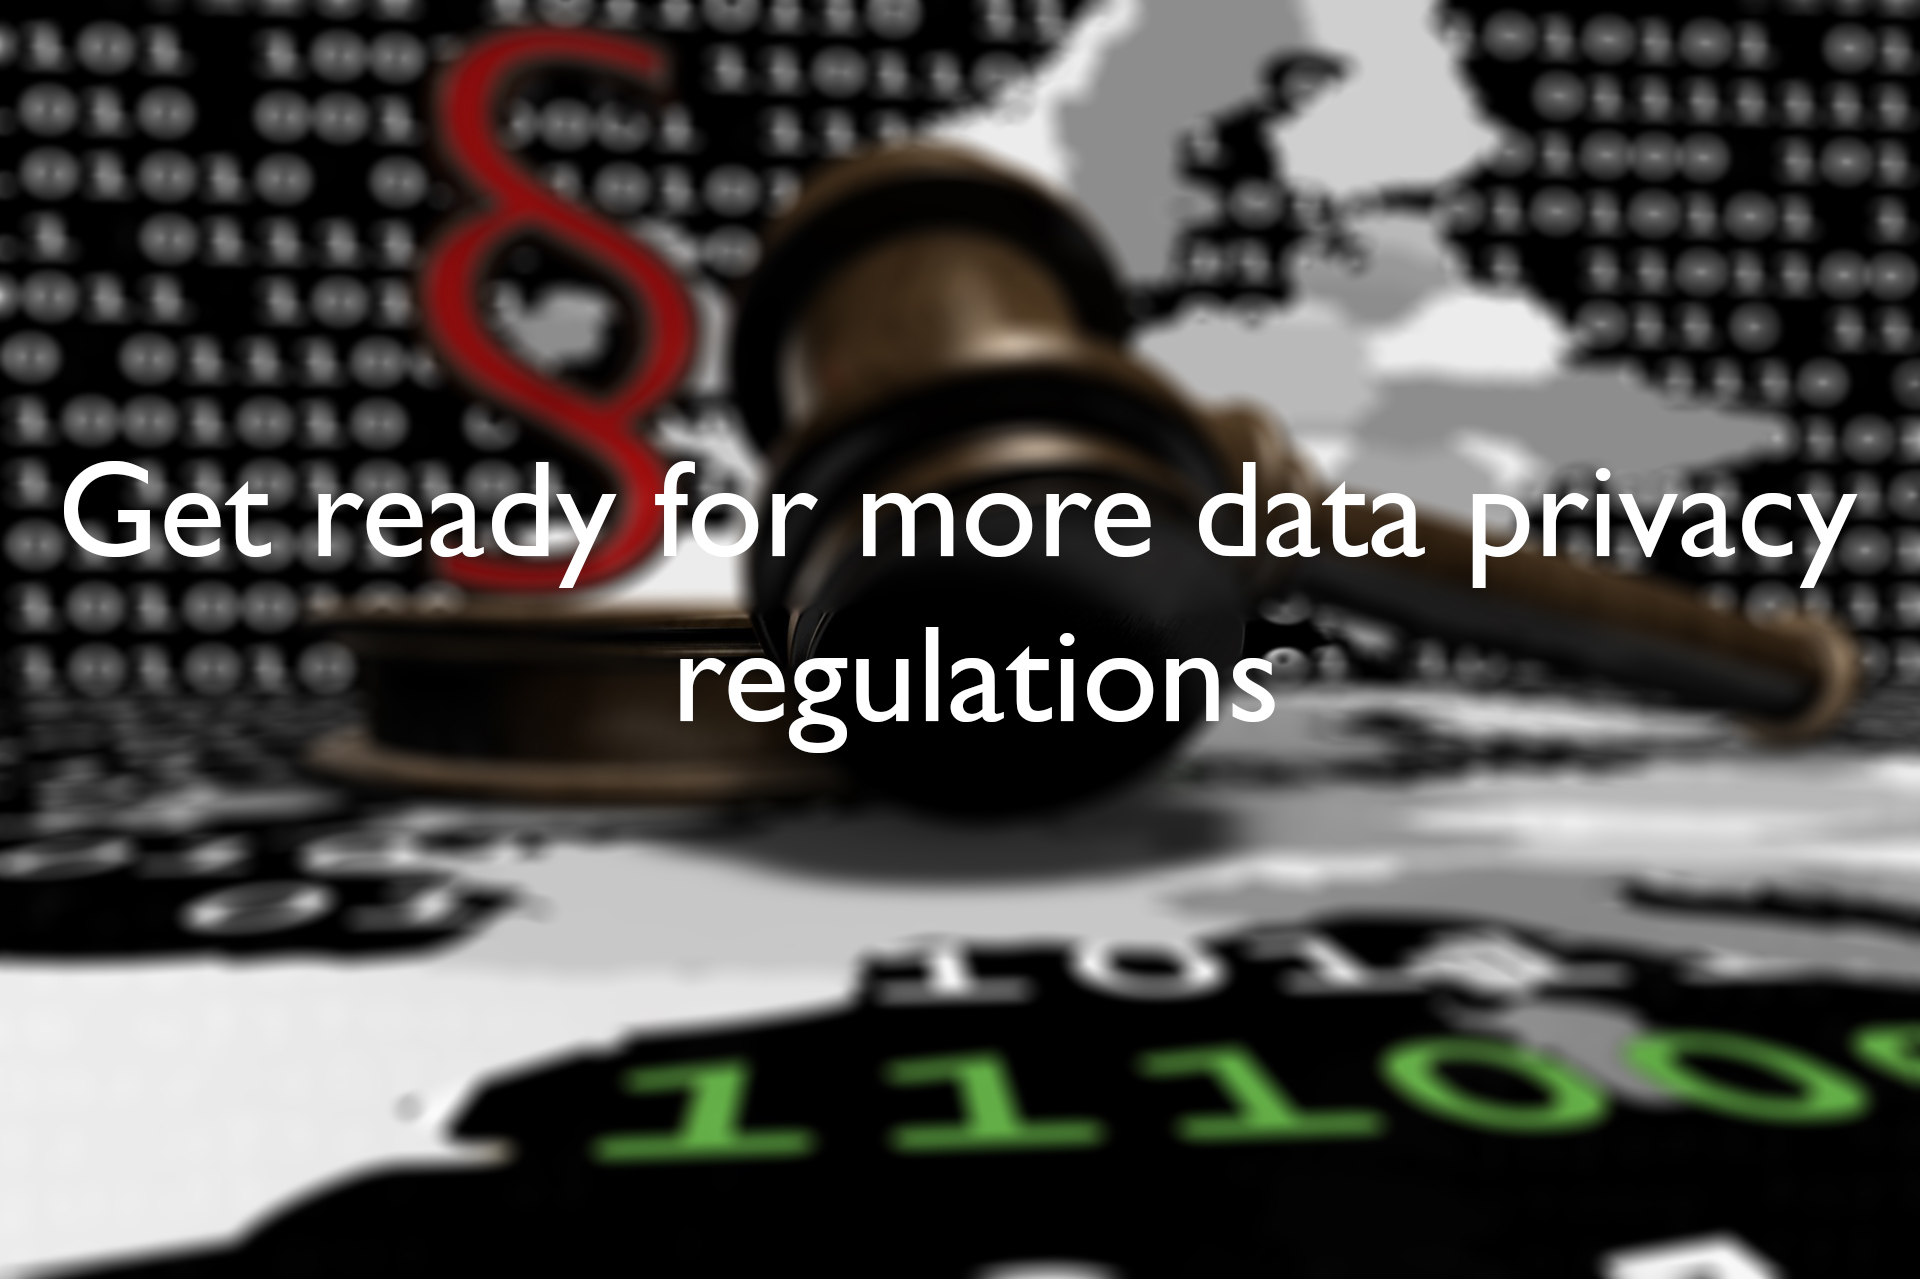 Get ready for more data privacy regulations